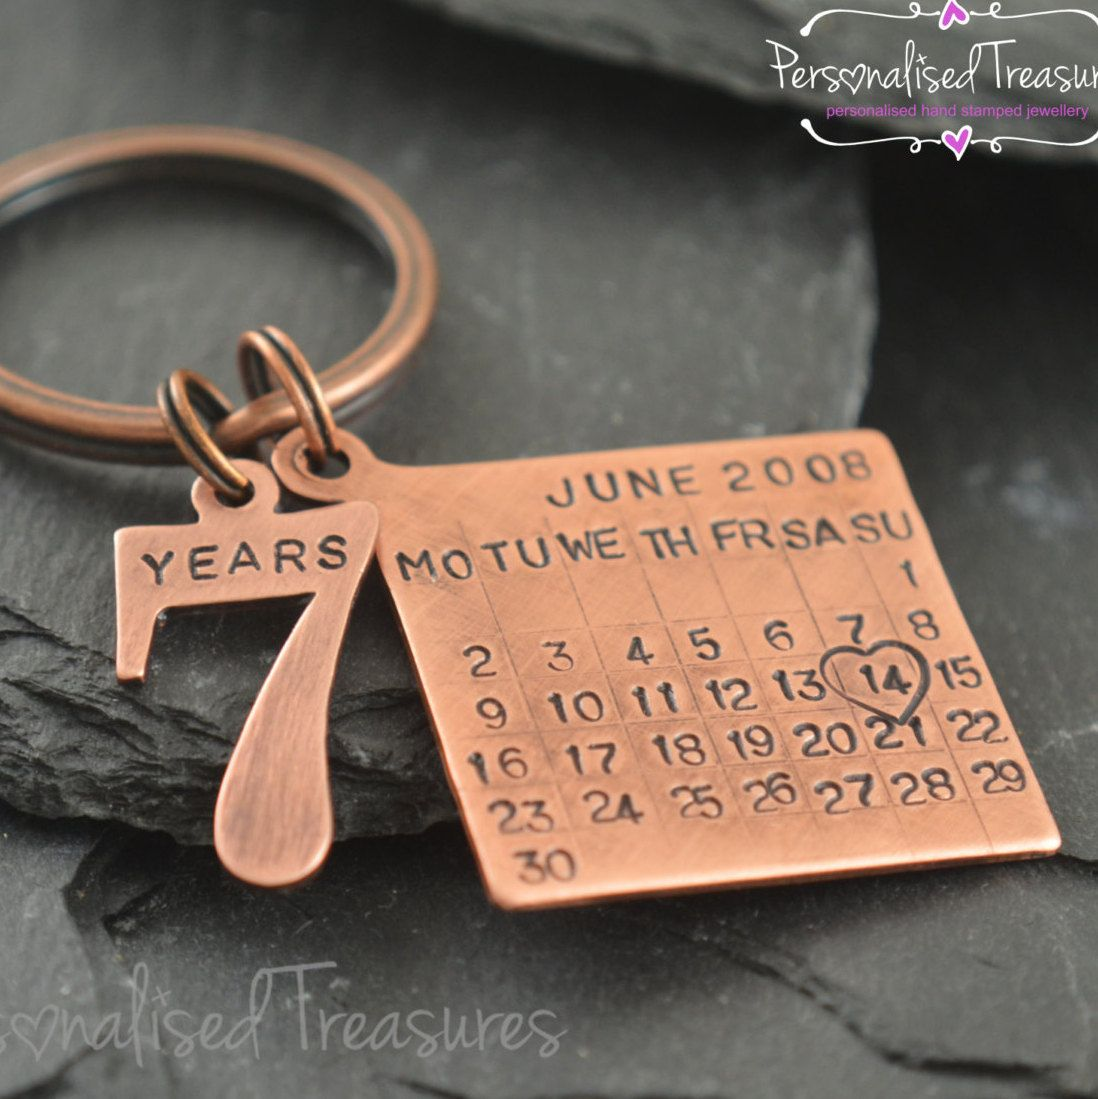 Personalised Key Ring Date Tag Calendar Charm With Number 7 Years Charm Solid Copper Gift For 7th Wed Copper Gifts Boyfriend Gifts Copper Anniversary Gifts